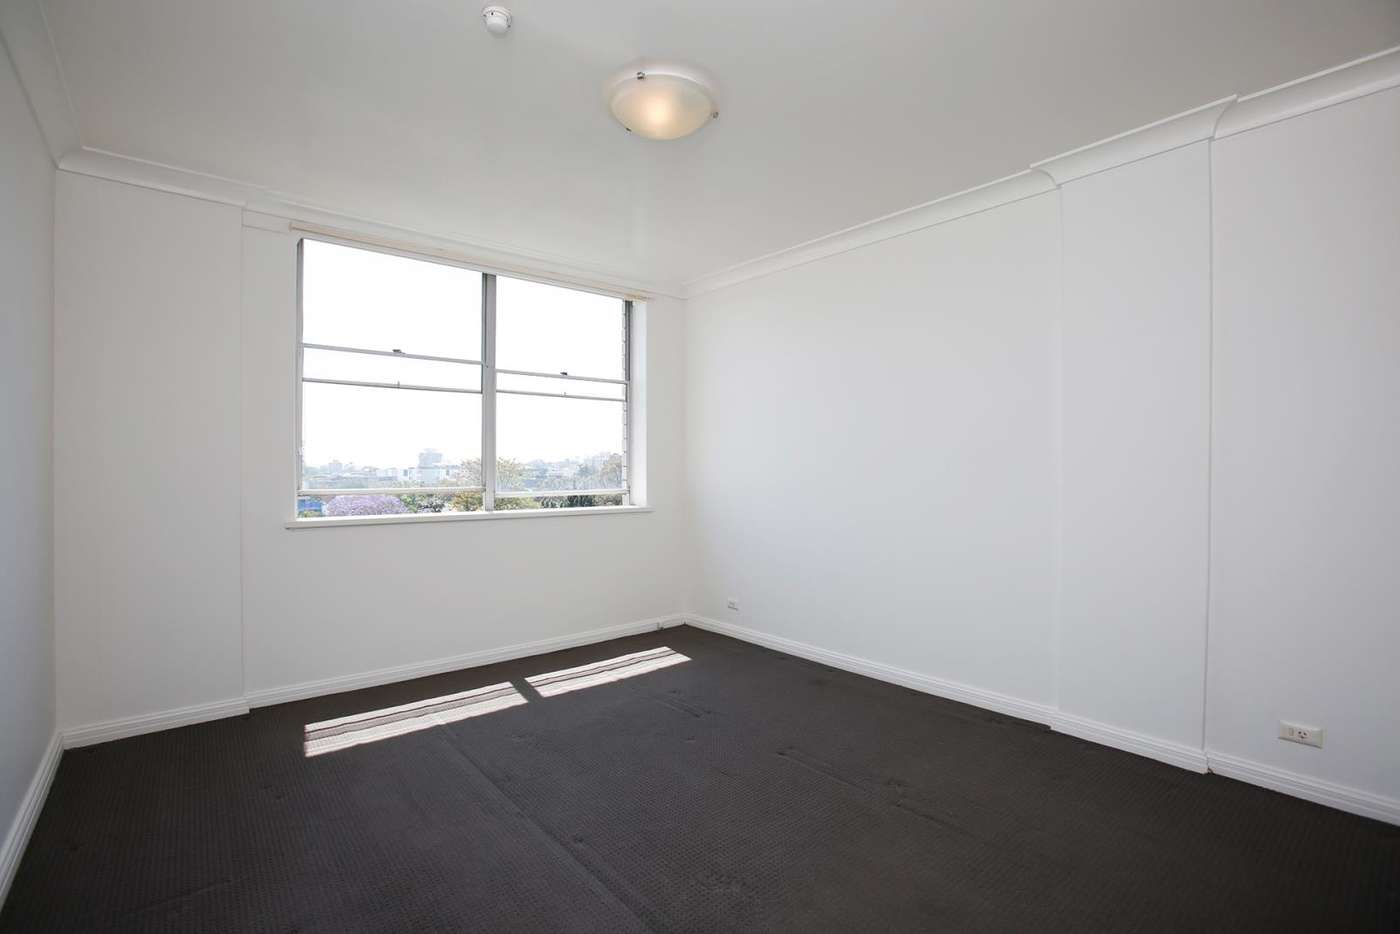 Seventh view of Homely apartment listing, 35/9 Hampden Avenue, Cremorne NSW 2090